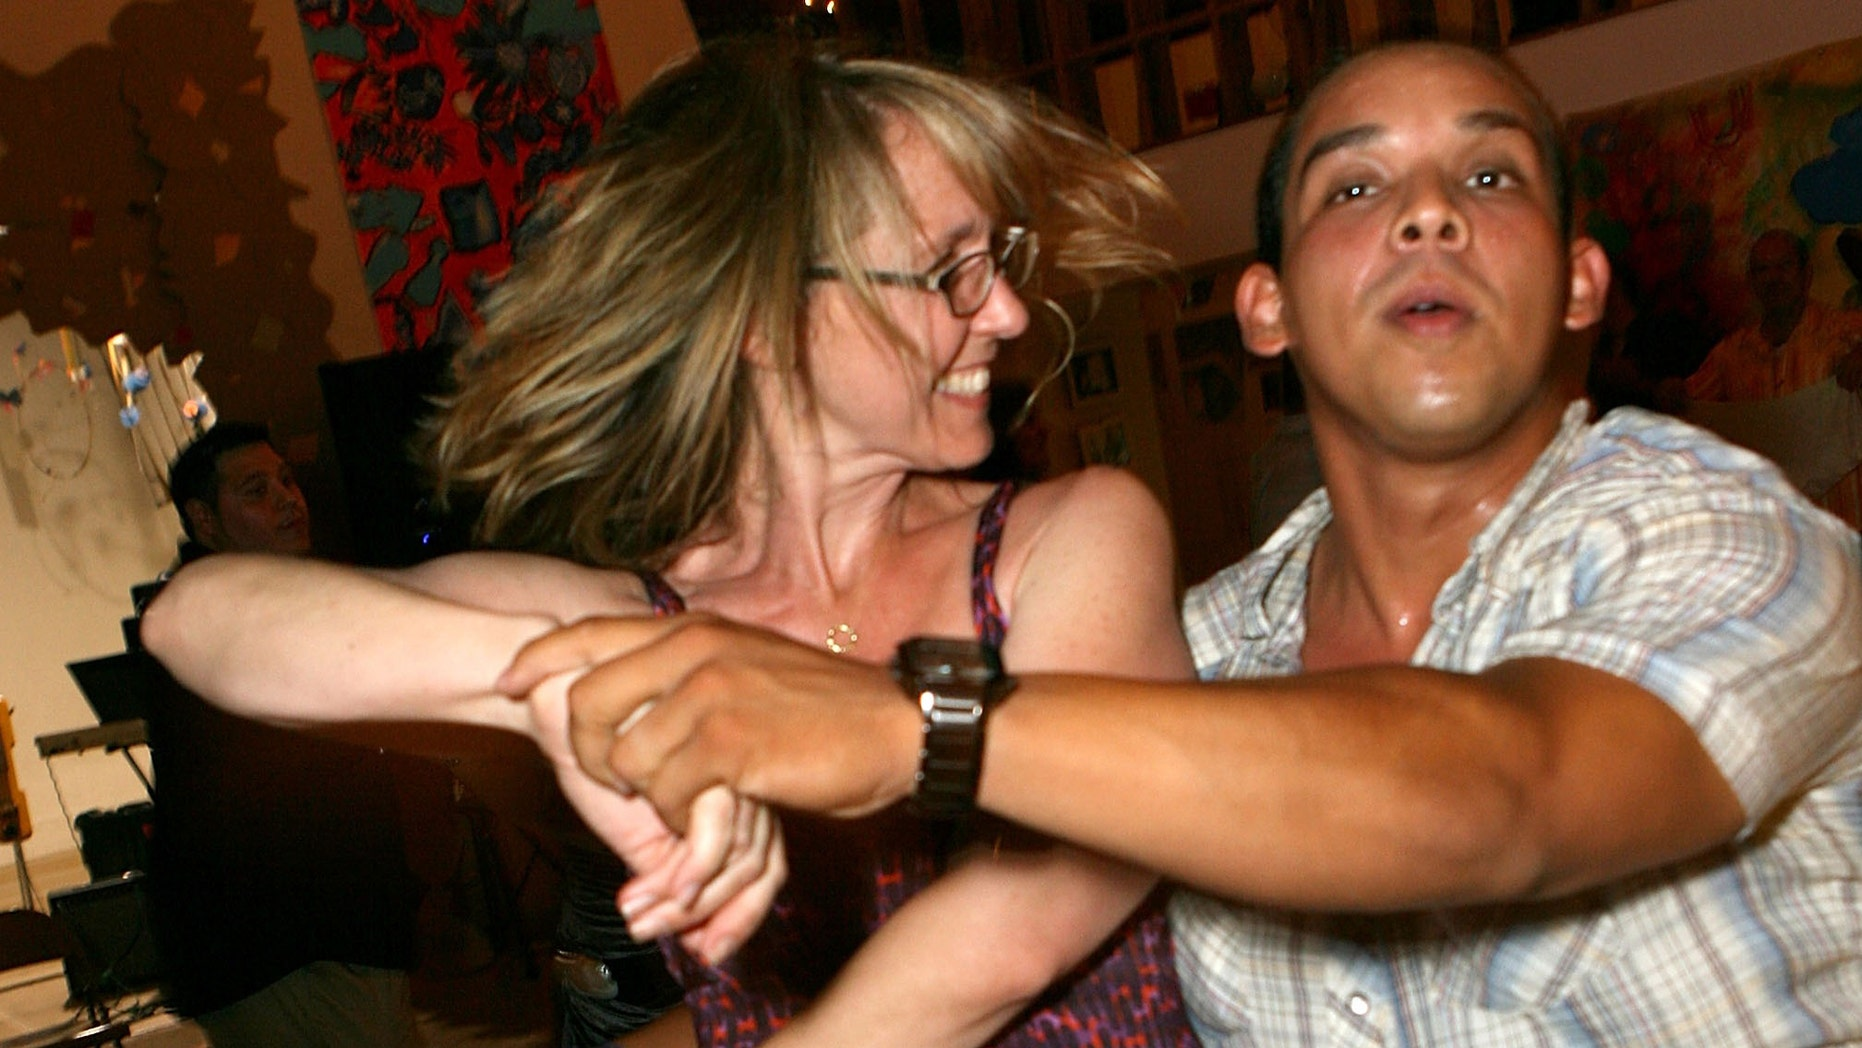 LOS ANGELES, CA - JULY 28:  Actress Monica Rosenthal dances the salsa at the Inner-City Arts Event on July 28, 2007 in Los Angeles, California.  (Photo by Michael Buckner/Getty Images)